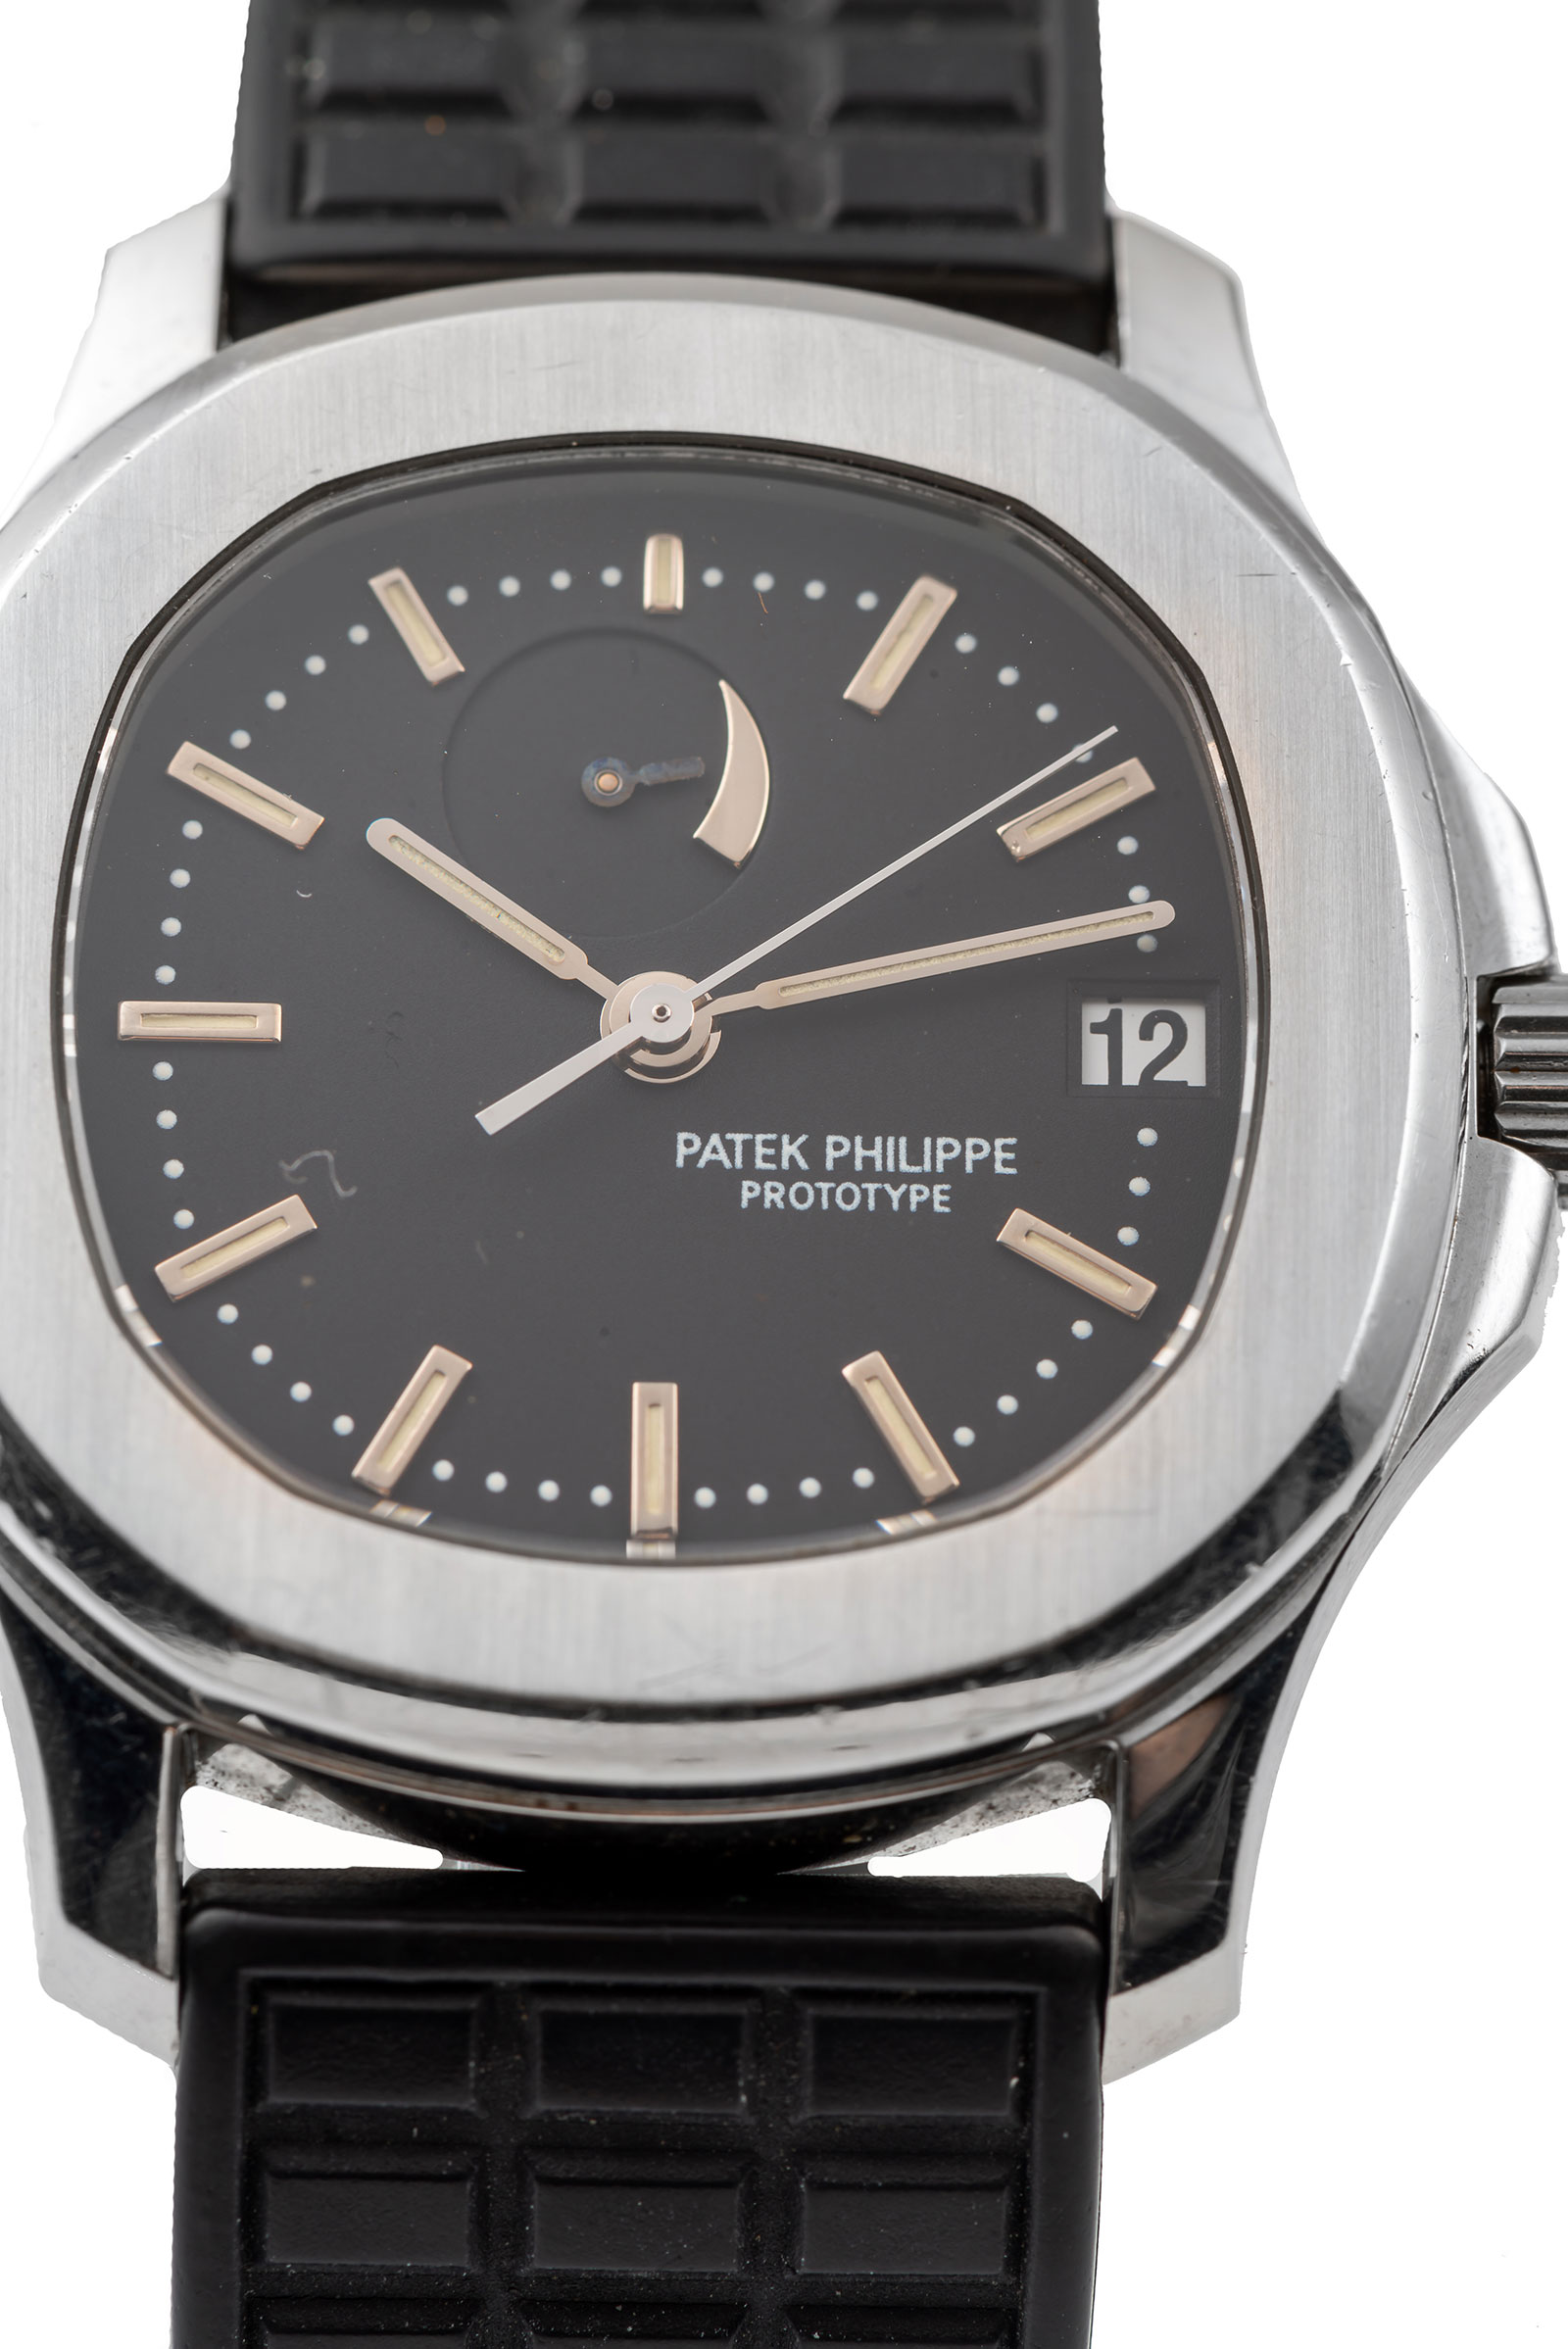 patek philippe aquanaut prototype power reserve 5